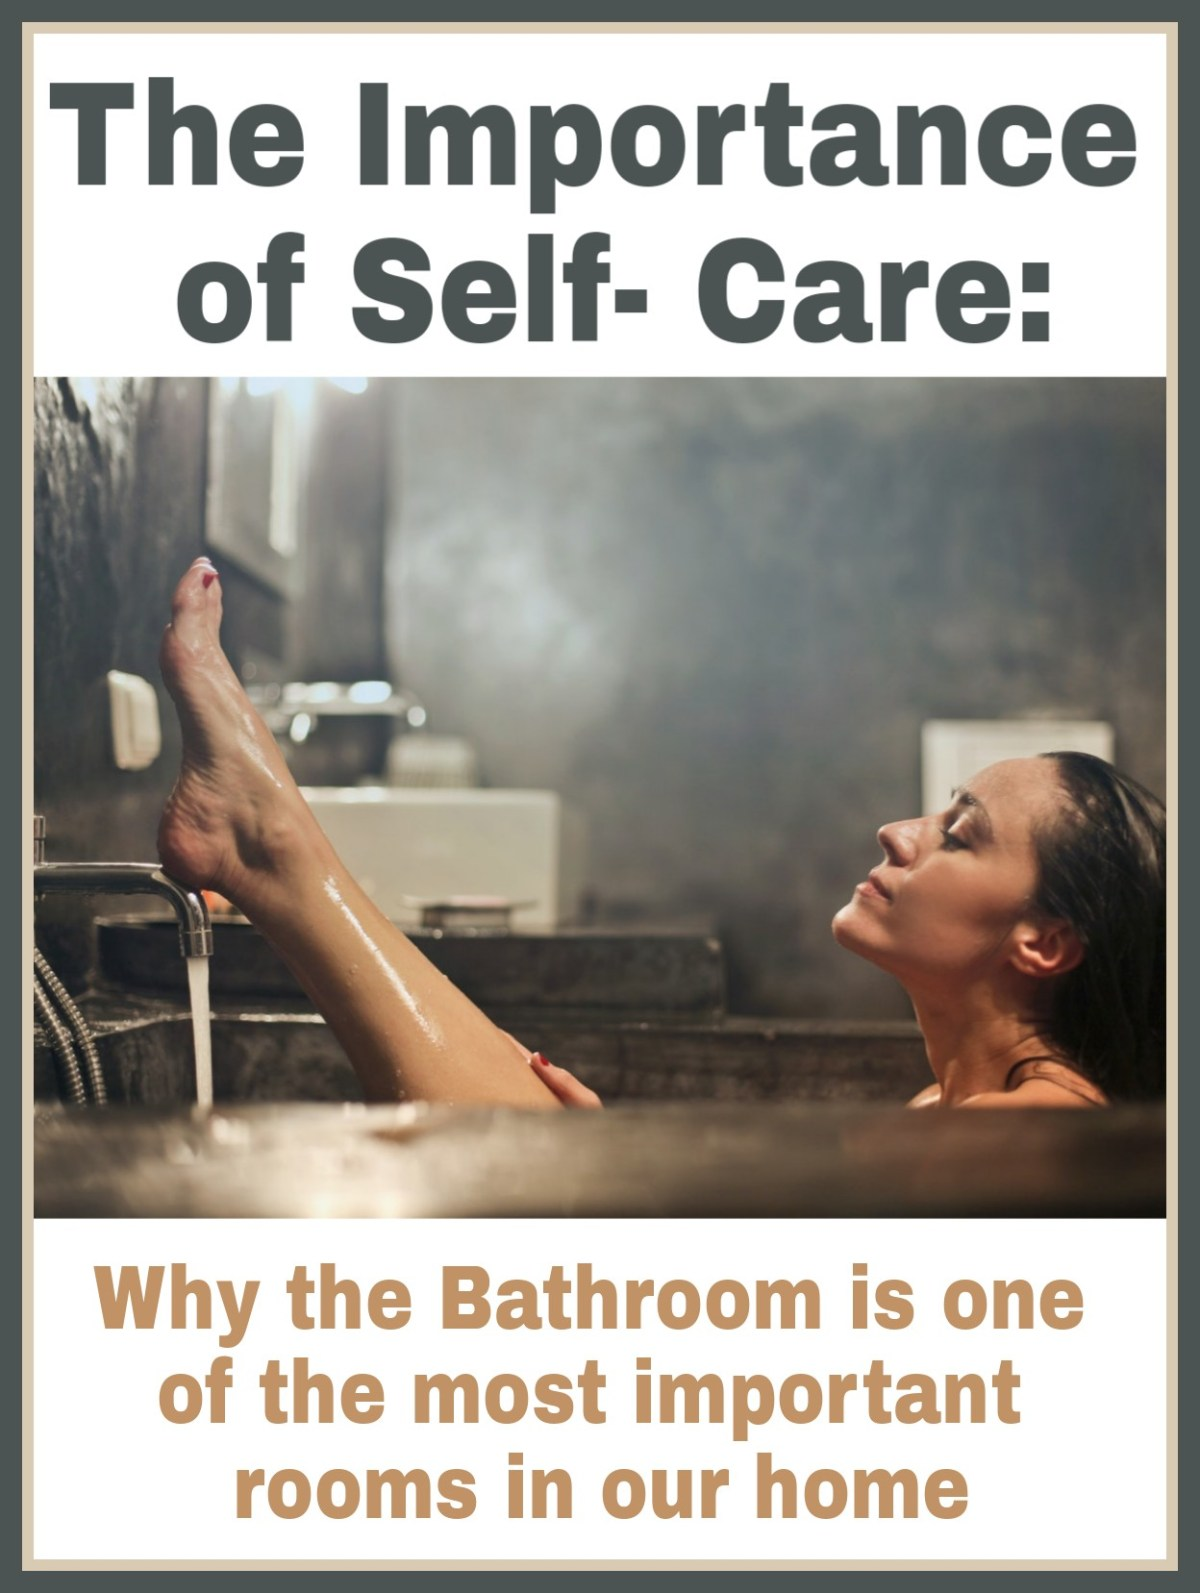 The Importance of Self- Care: Why the Bathroom is One of the Most Important Rooms in Our Home